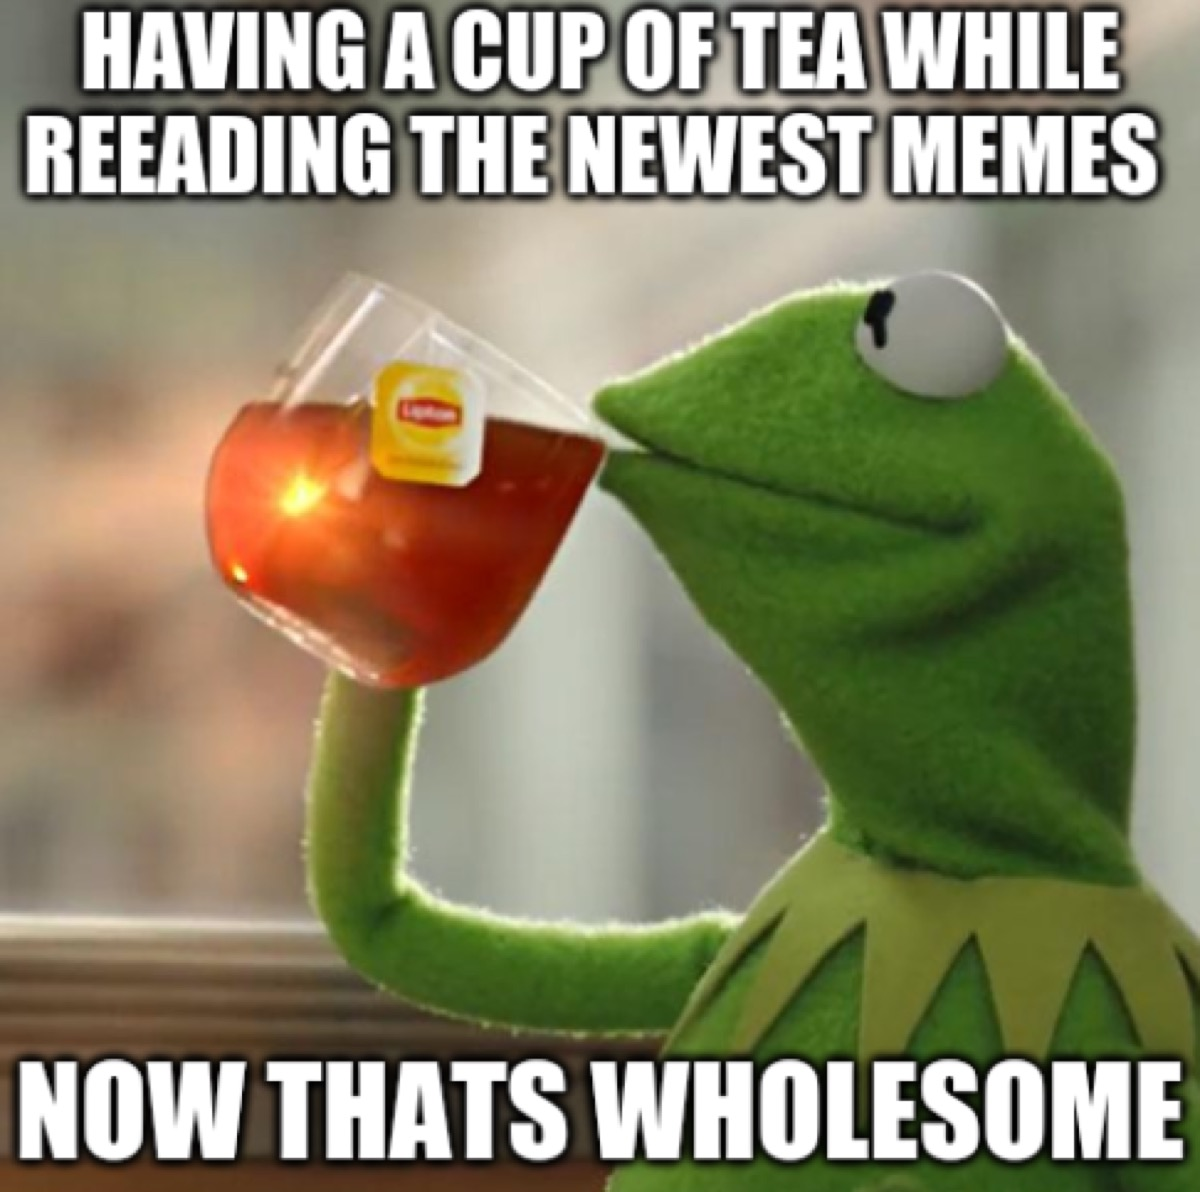 """Kermit sipping tea with the caption """"Having a cup of tea while reading the newest memes. Now that's wholesome."""""""